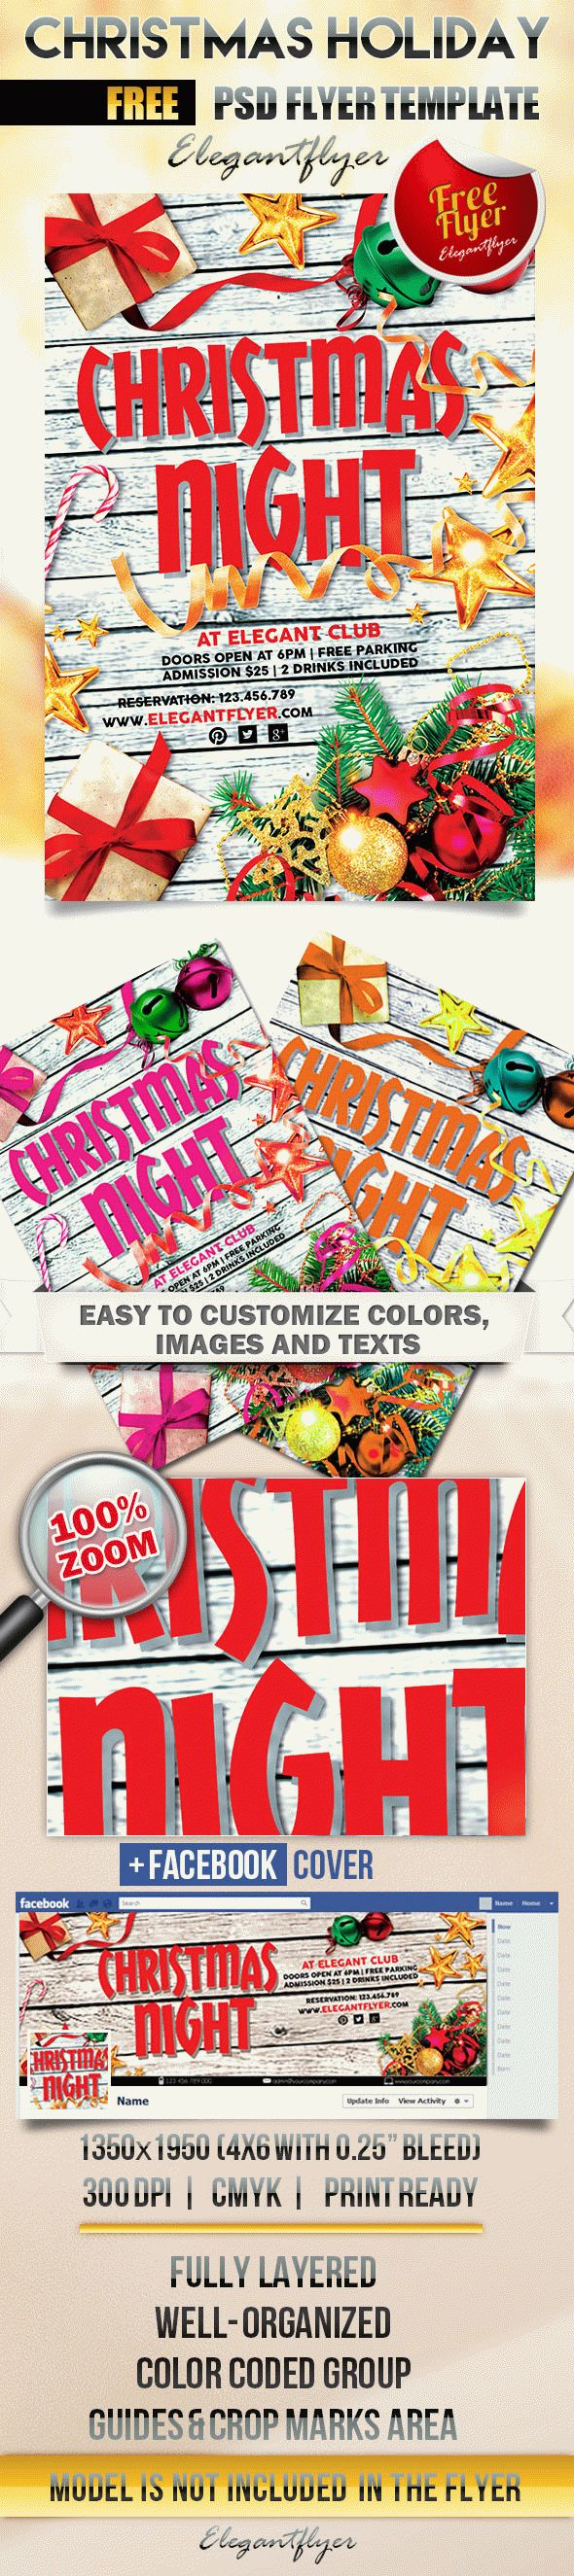 christmas holiday flyer psd template facebook cover by christmas holiday flyer psd template facebook cover